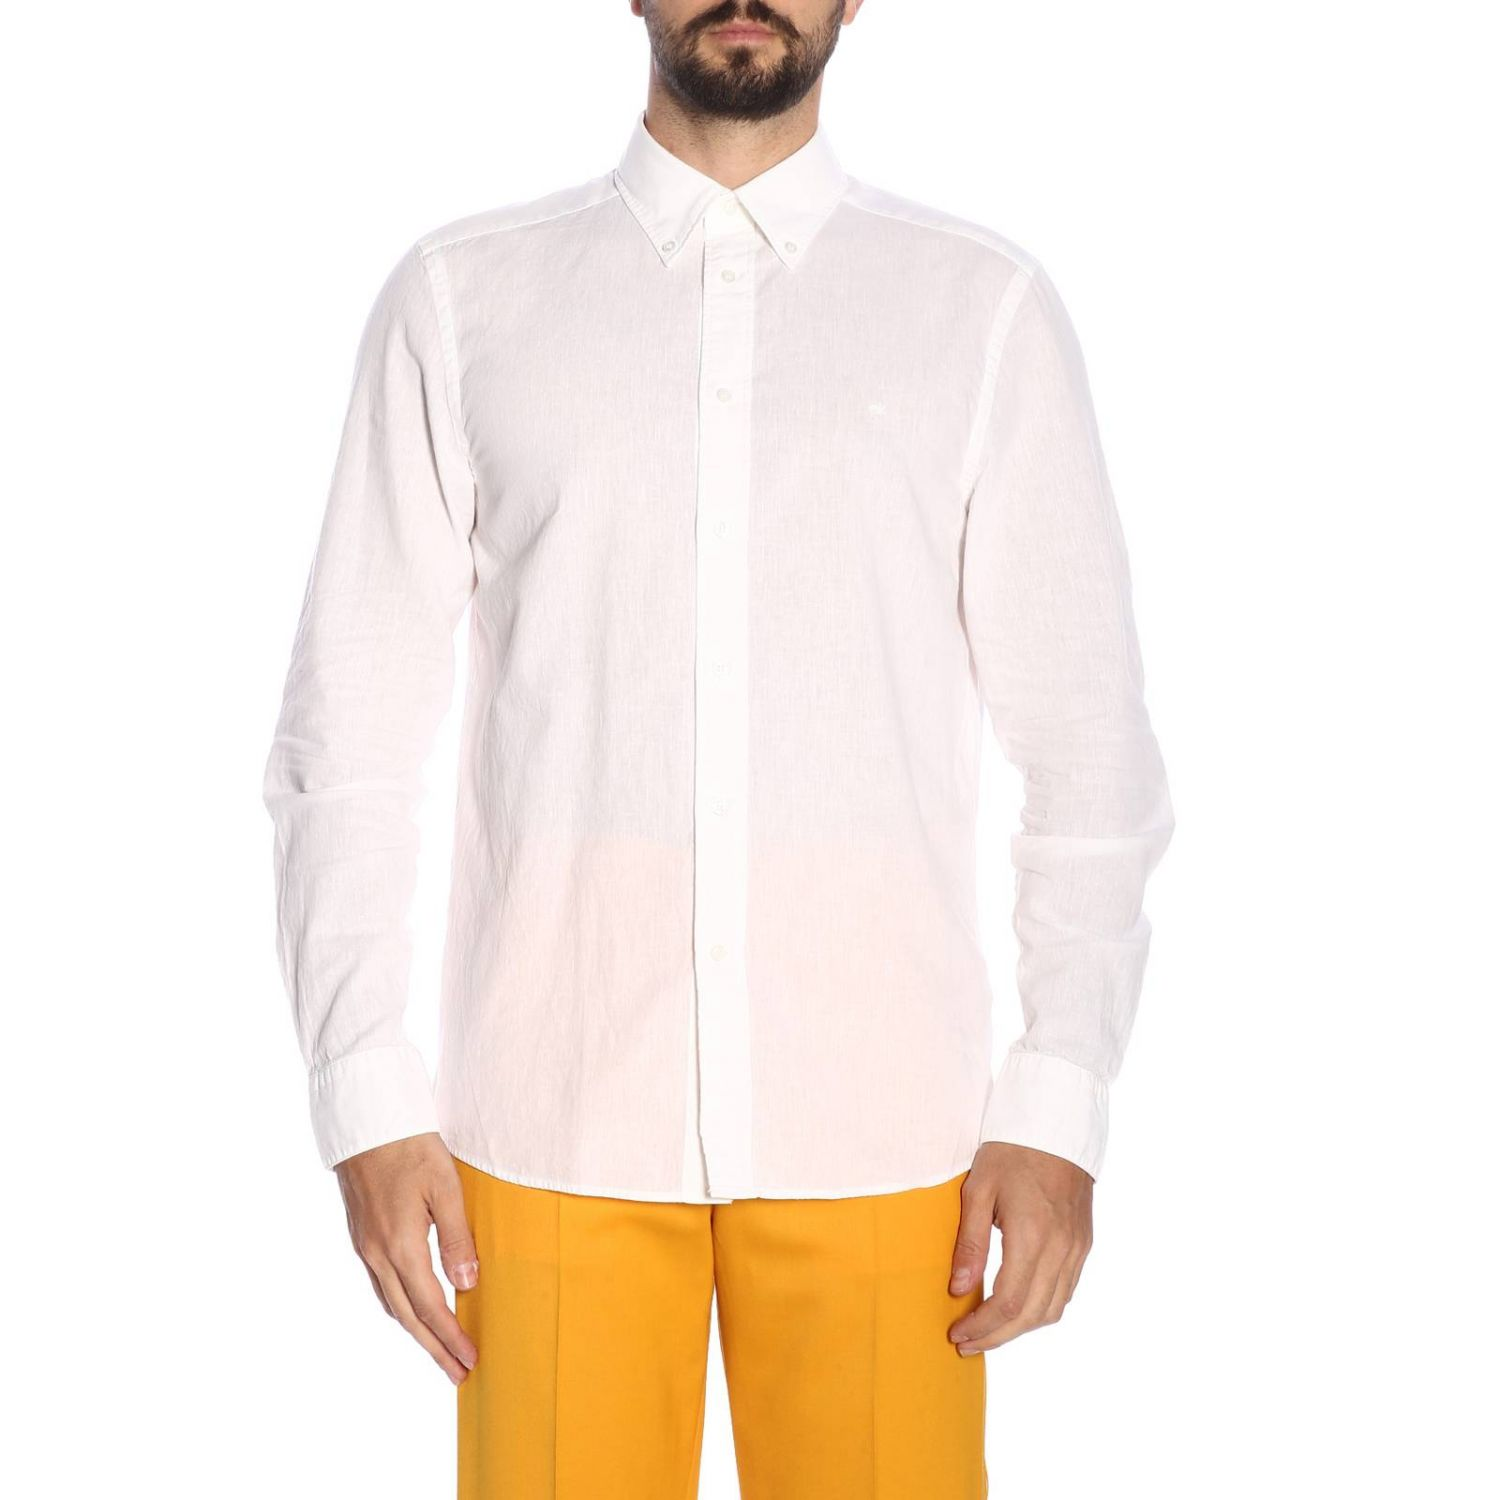 Shirt men Calvin Klein white 1